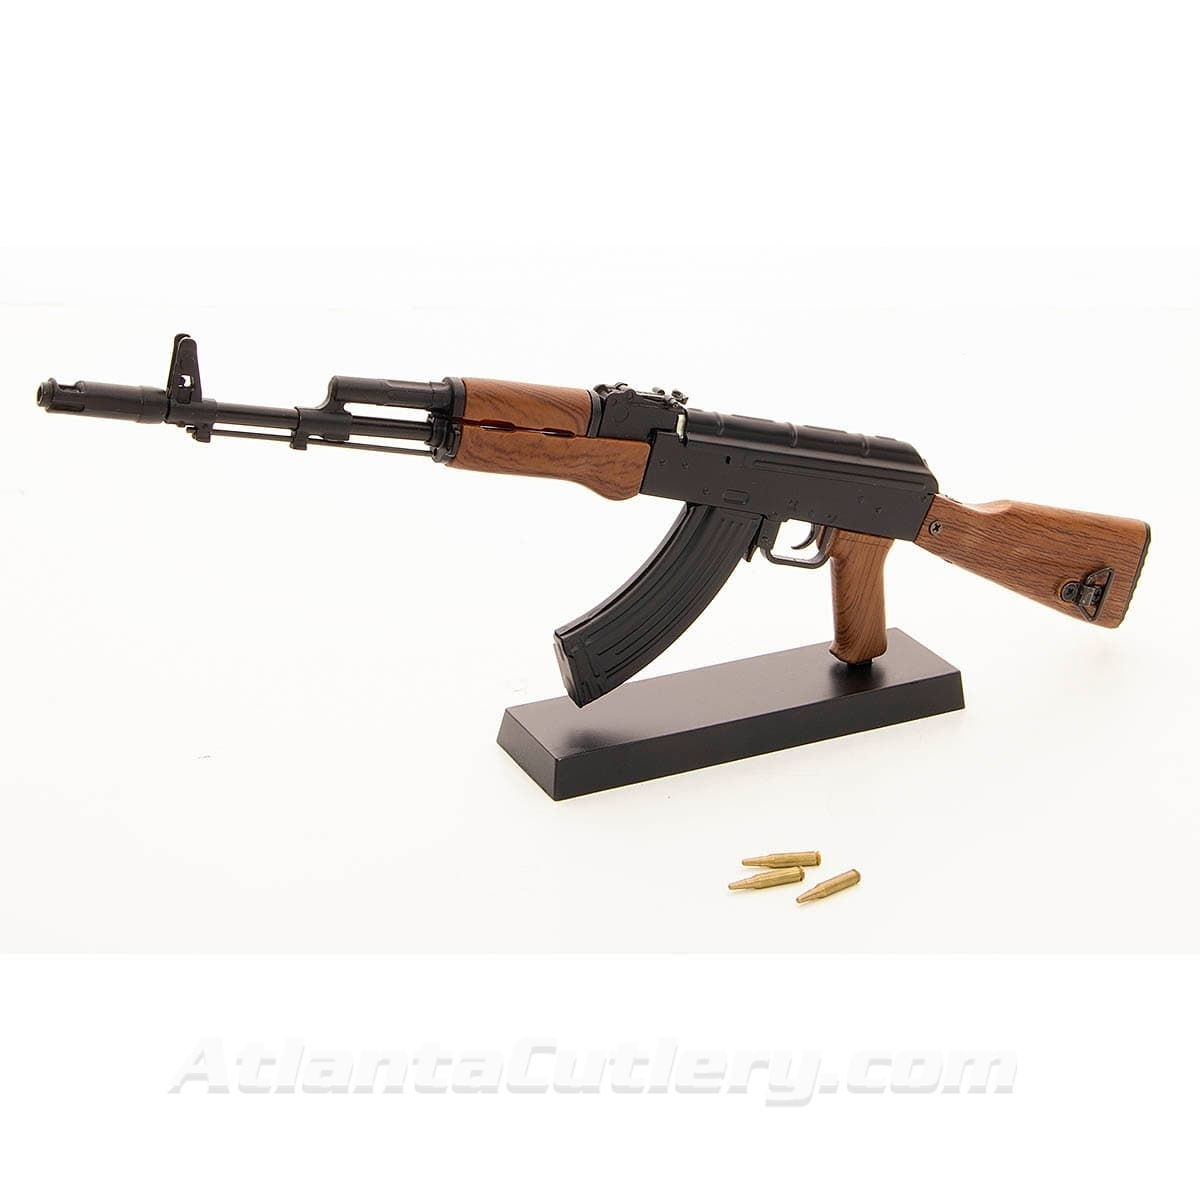 Miniature AK-47 Toy Model Gun with Moving Parts